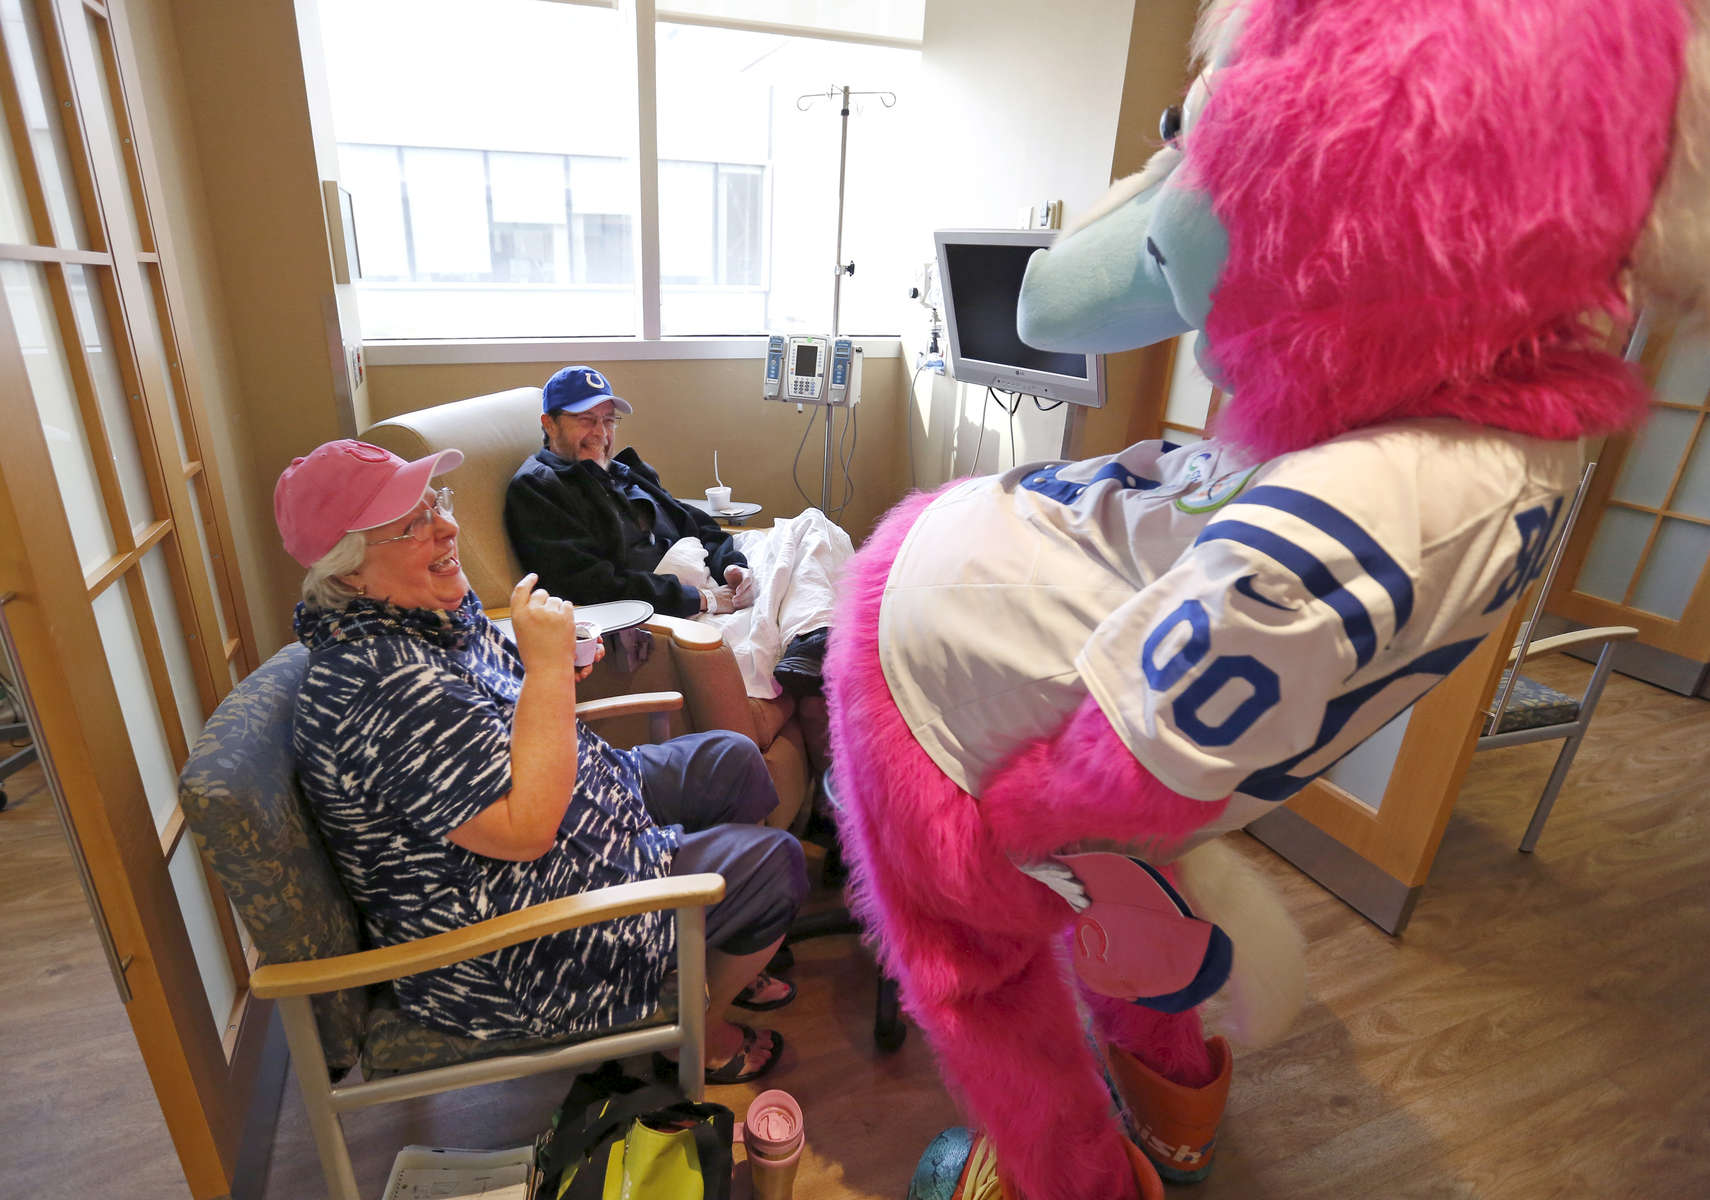 Members of the Indianapolis Colts visit patients at the IU Health Simon Cancer Center Tuesday October 11, 2016. Chris Bergin / IU Health Visual Media